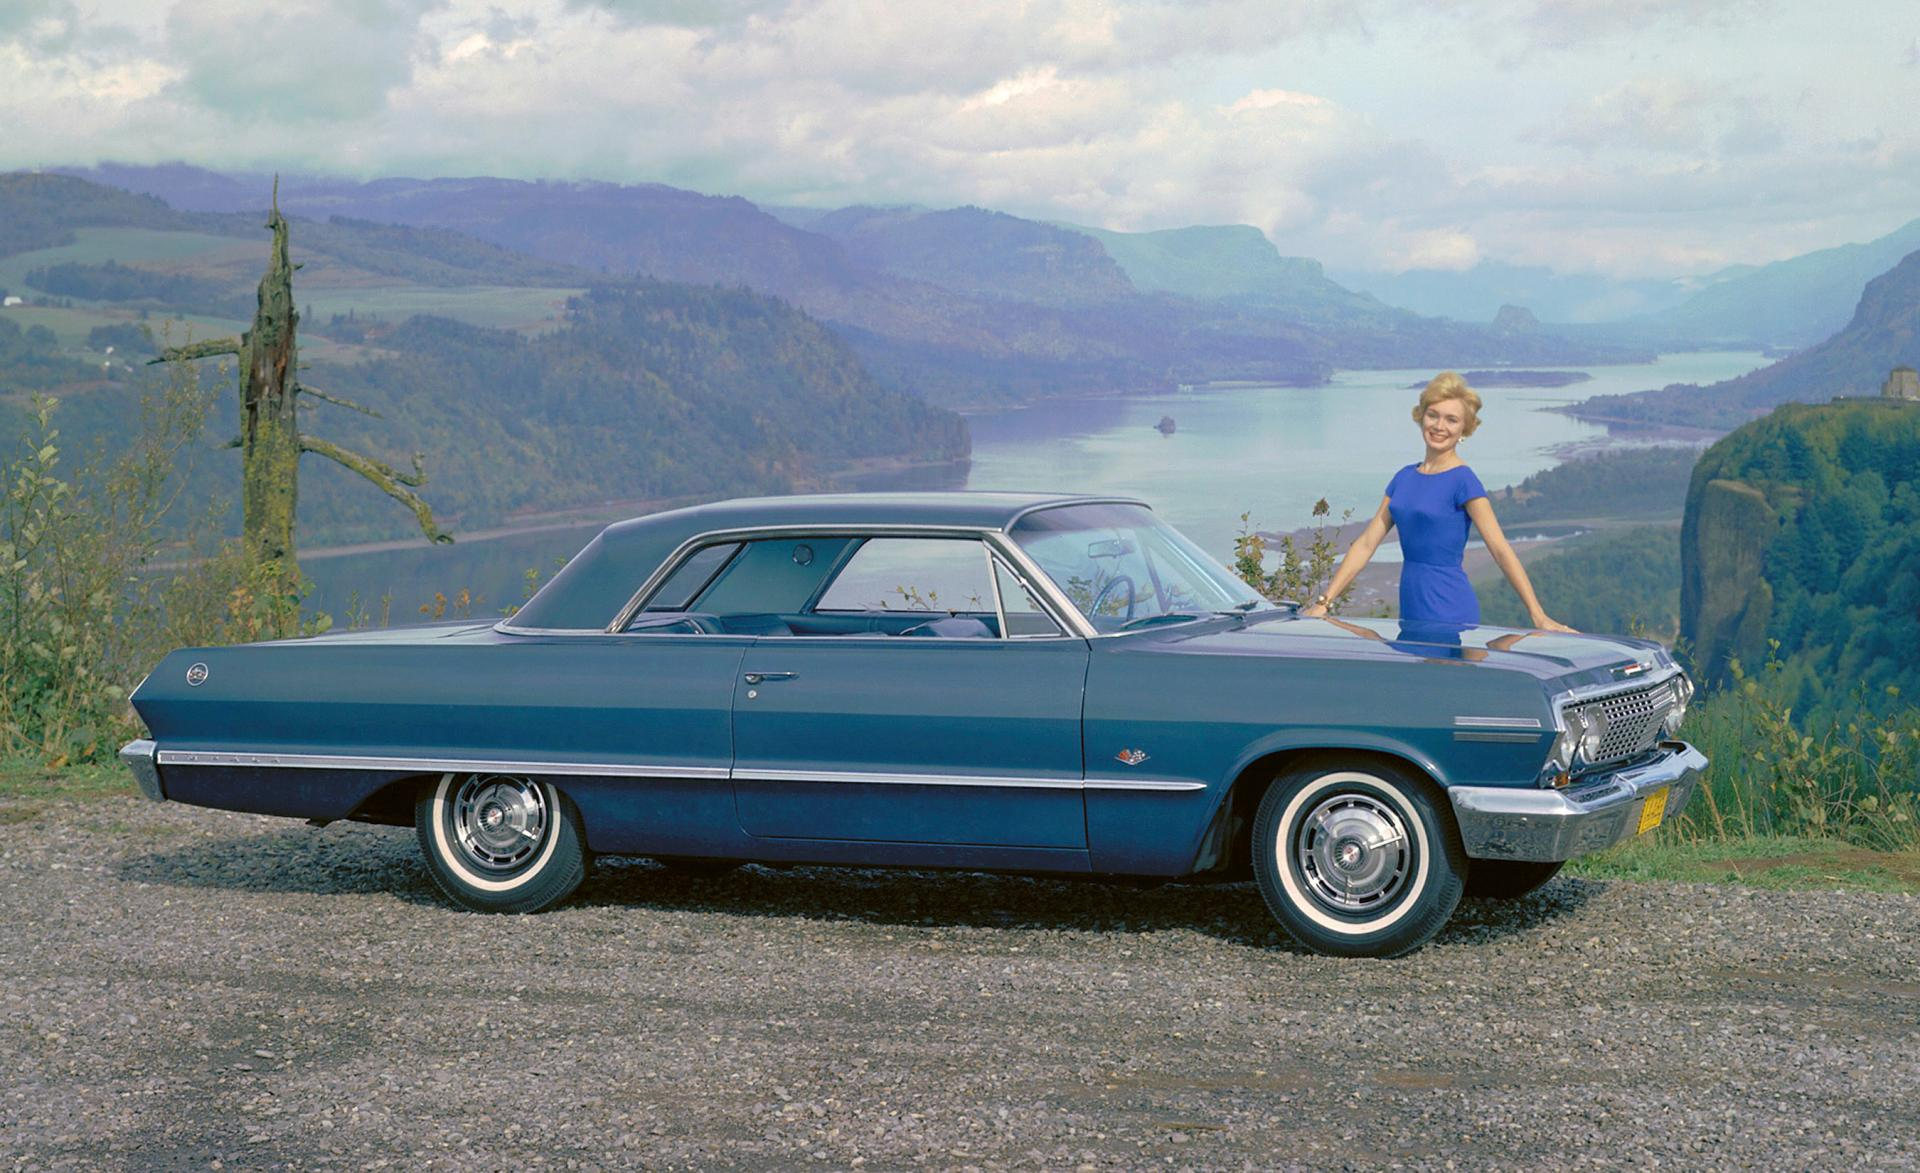 1963 Chevrolet Impala Series History Pictures Value Auction Sales 1966 Bel Air Research And News